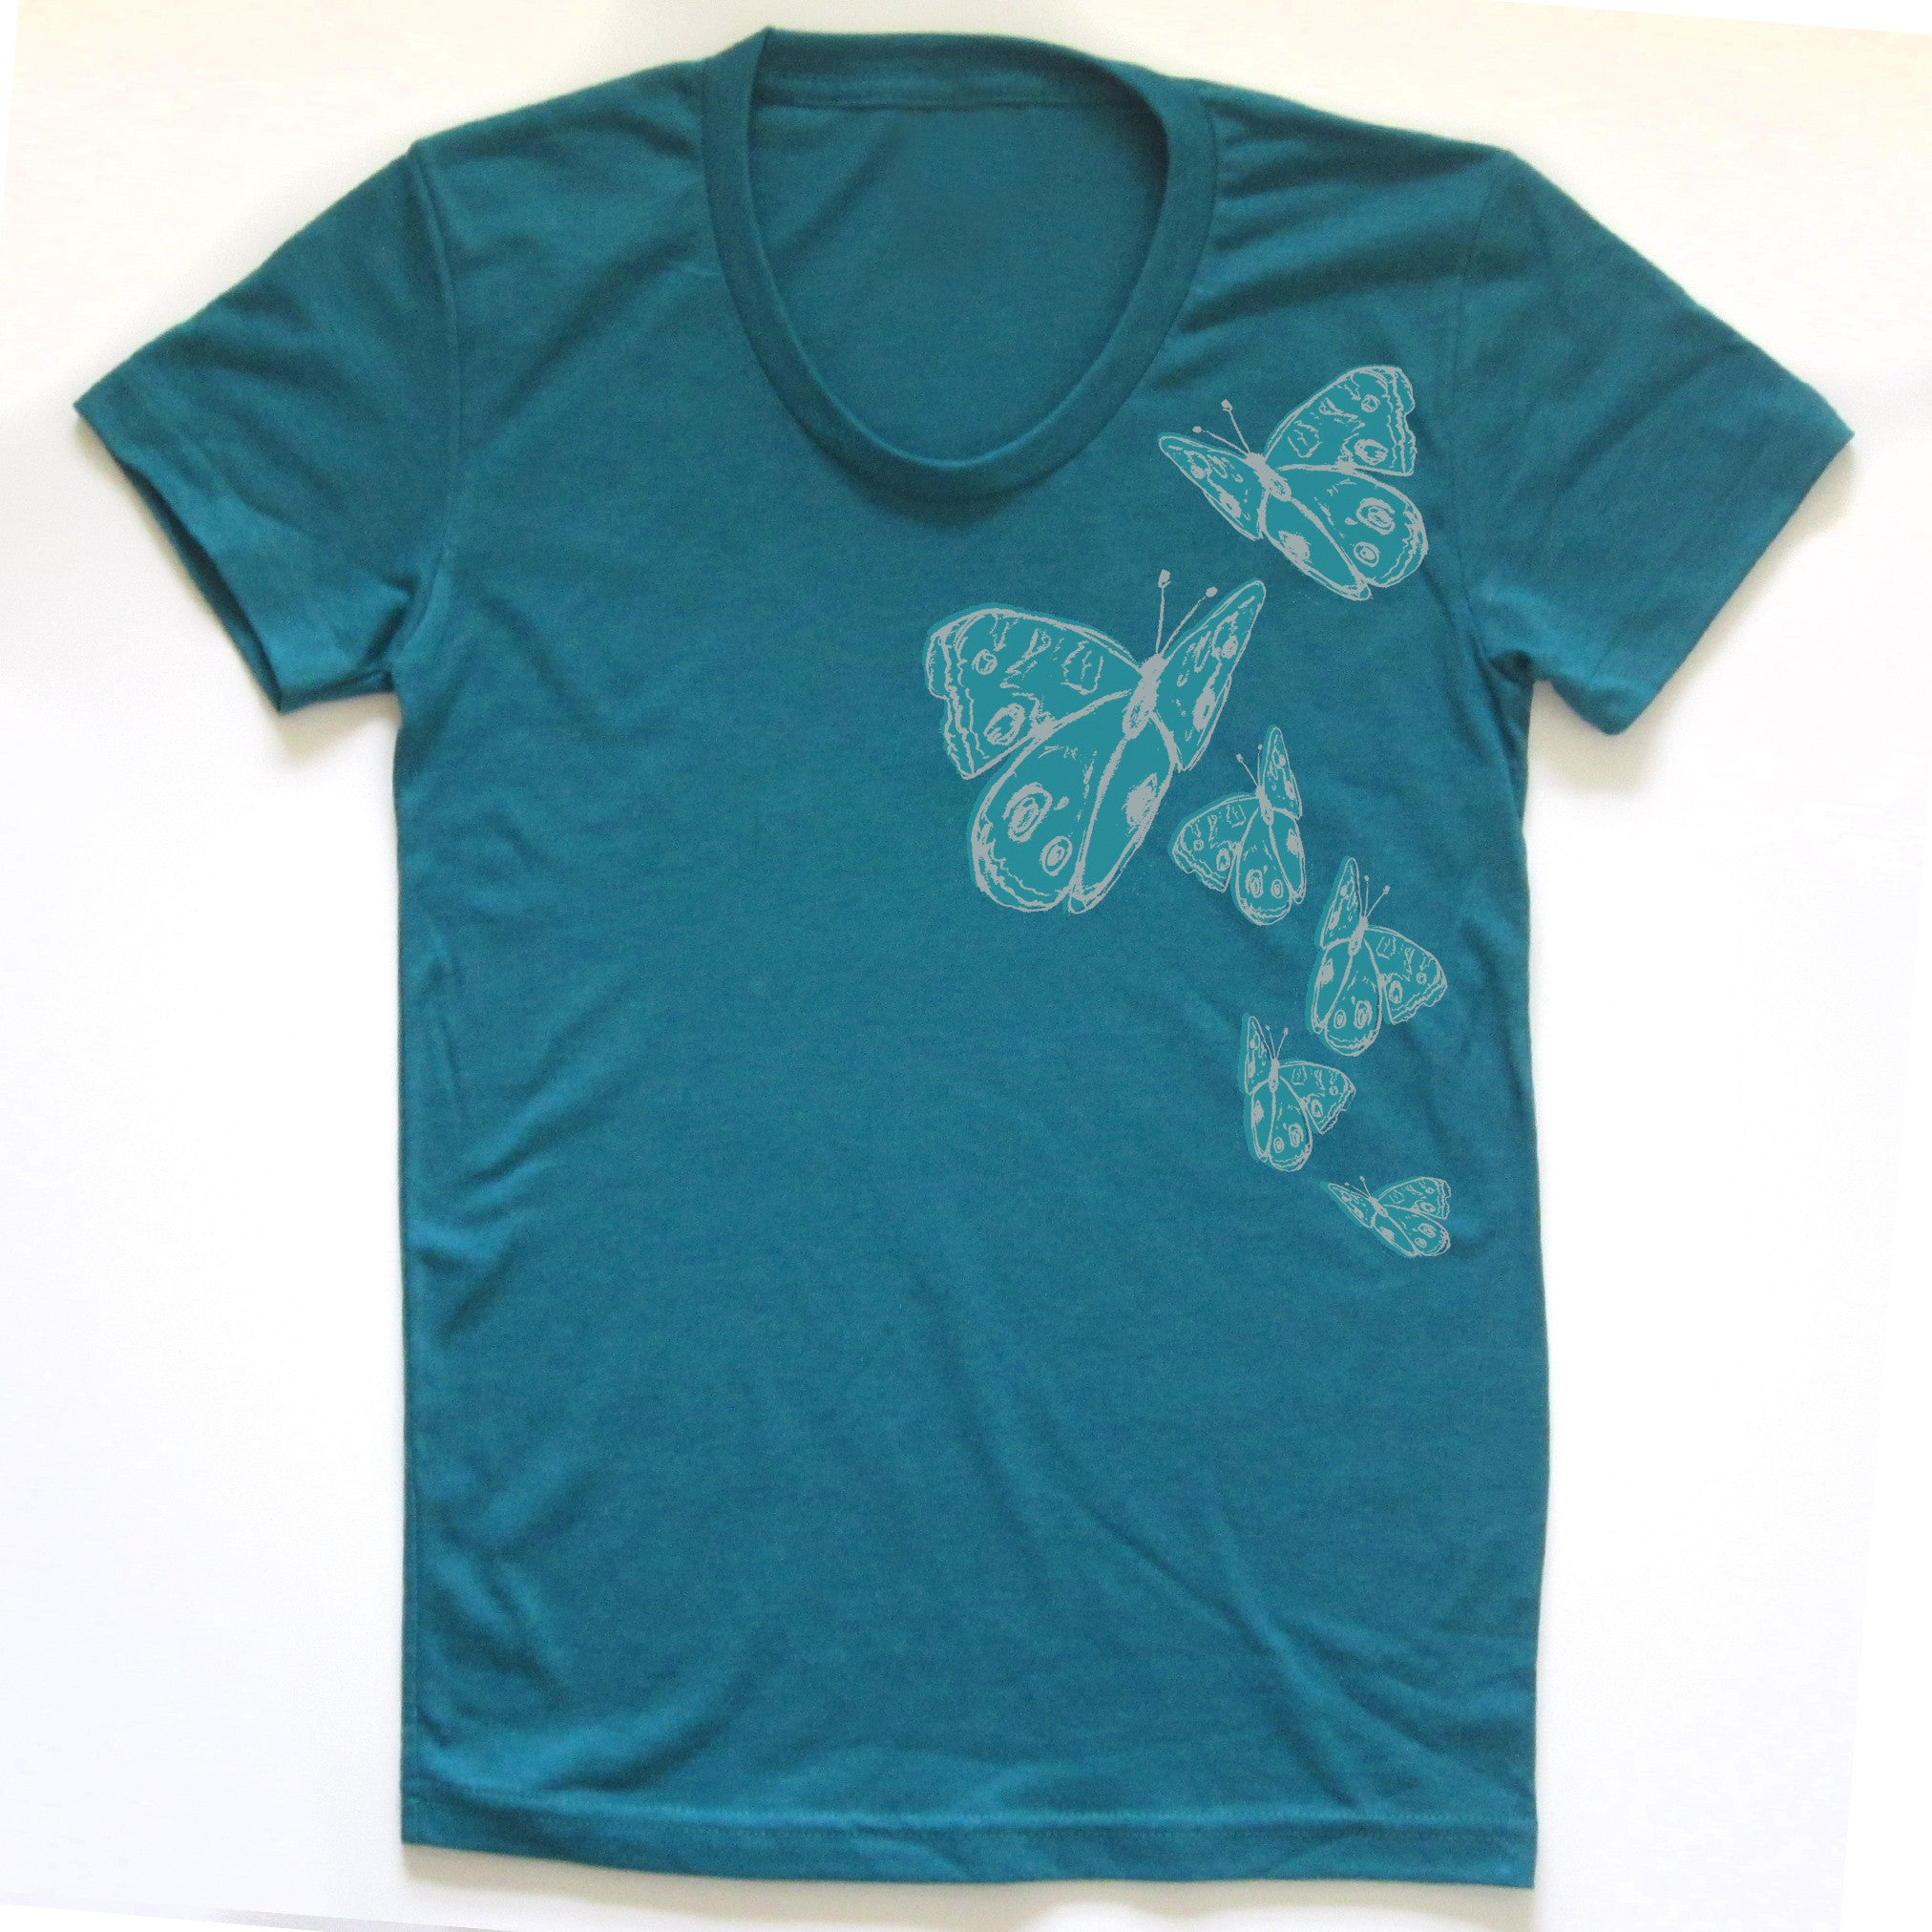 Butterflies : women tri-blend tee, Women's Apparel - Megan Lee Designs